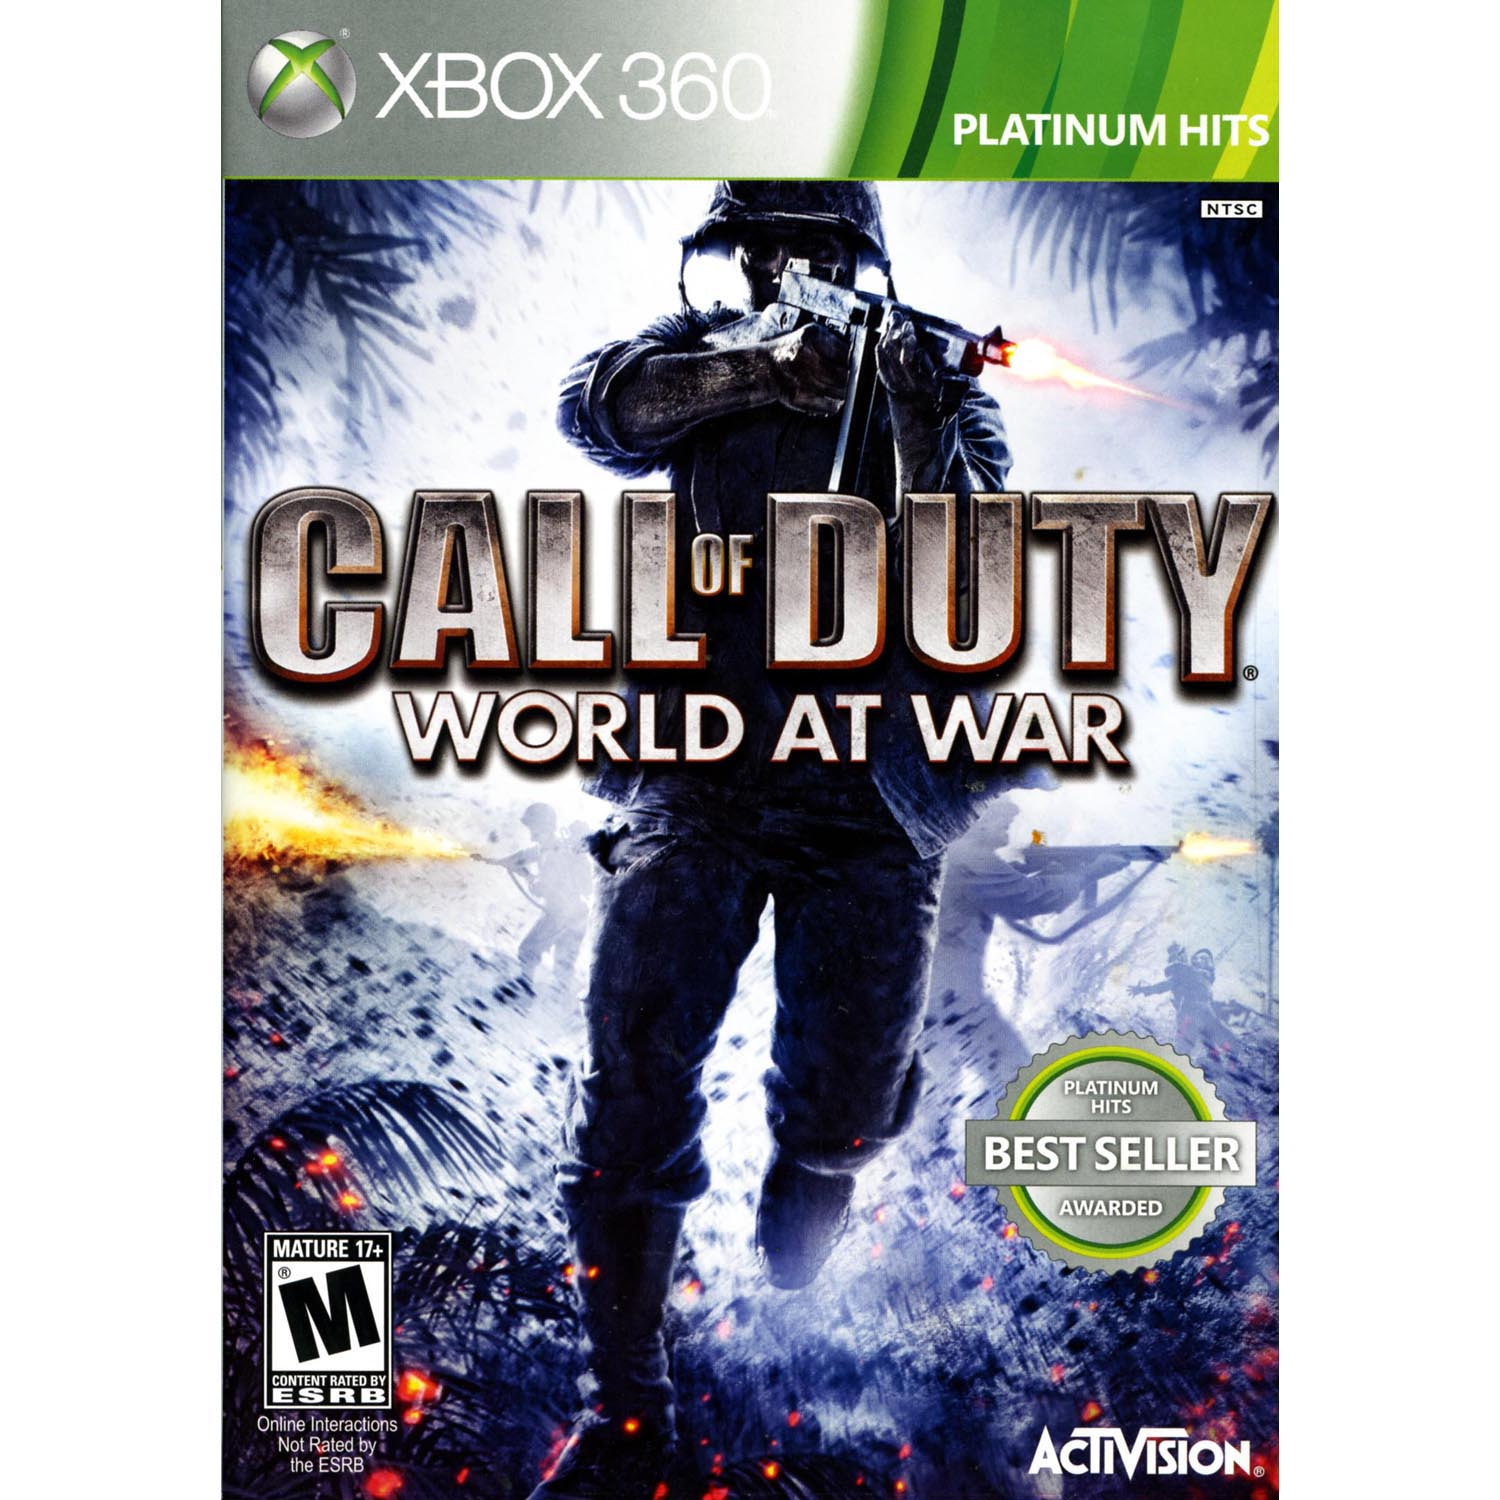 Video Games ETC! Call of Duty World At War Backwards Compatible, Activision, Xbox, 360, 047875881921